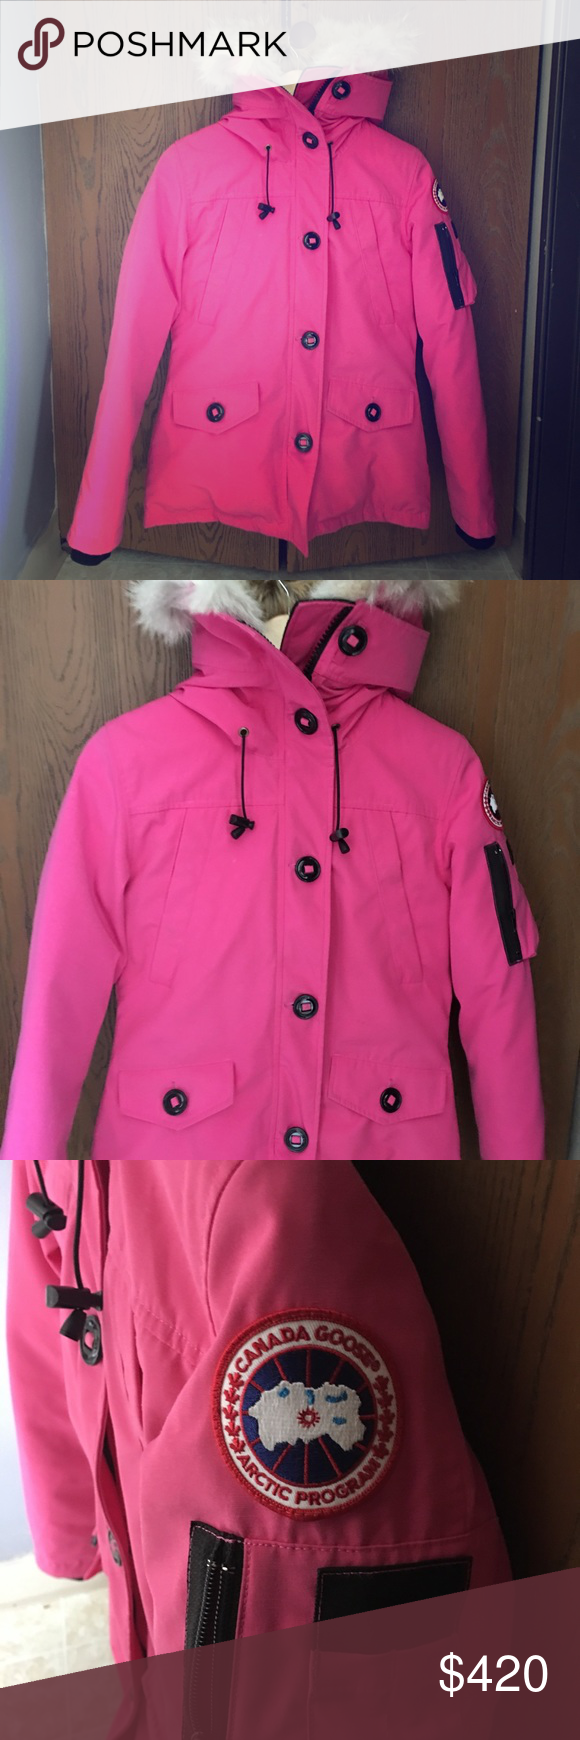 1e2df4325 Hot Pink Canada Goose Coat - fortyninegroup